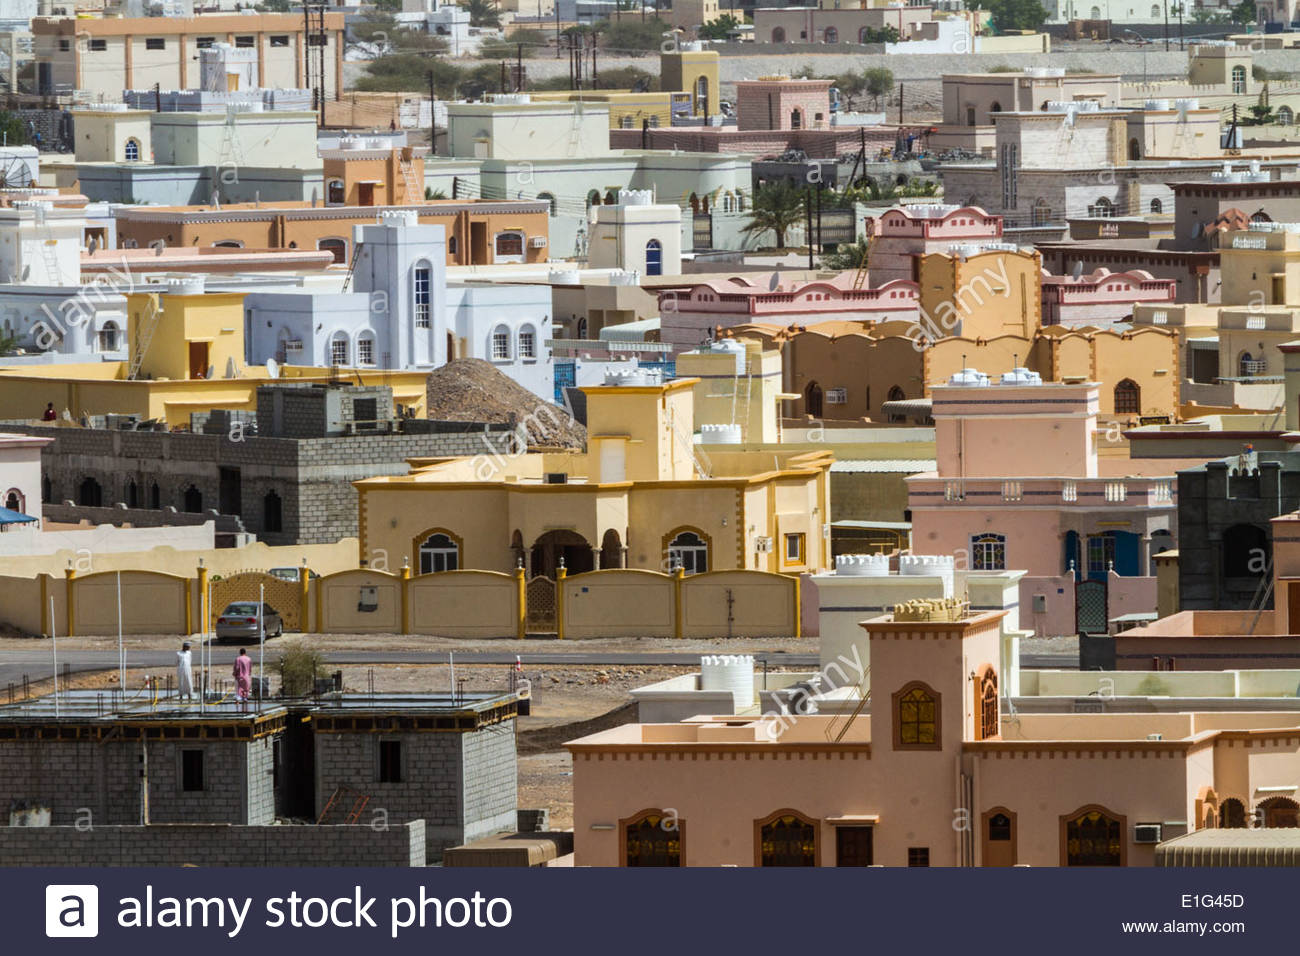 View of town houses - Oman - Stock Image